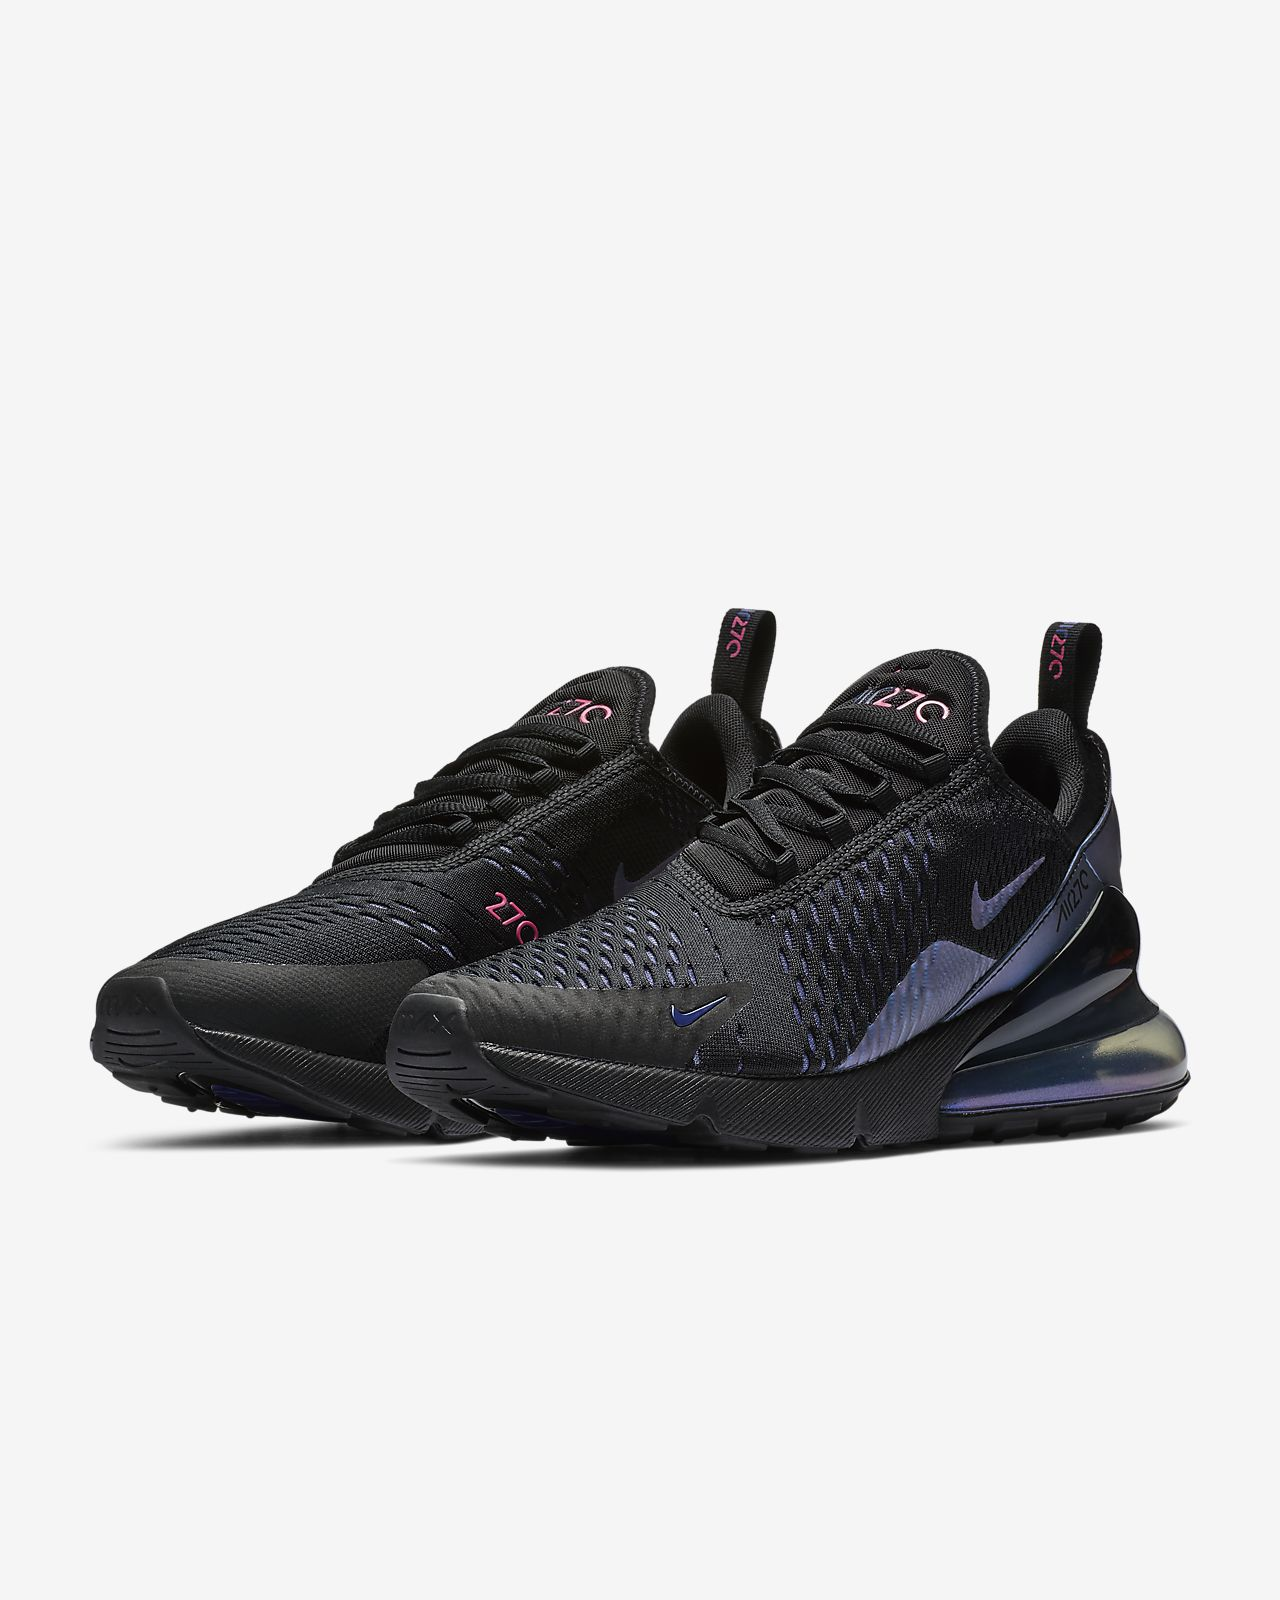 8980273672d Nike Air Max 270 Men s Shoe. Nike.com GB